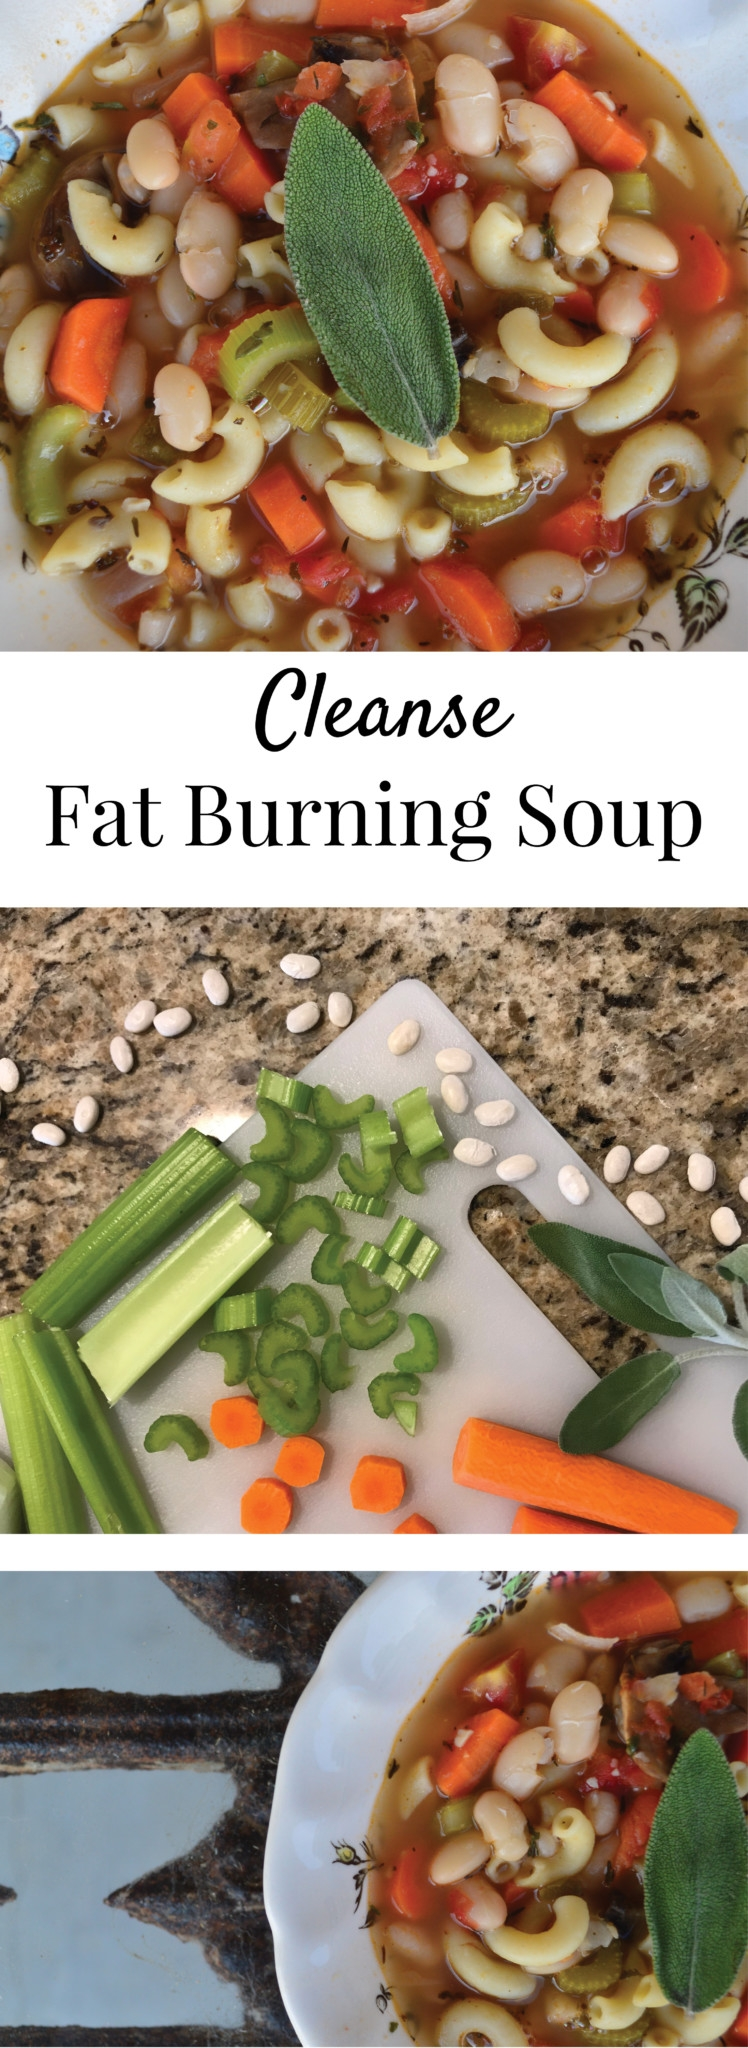 Cleanse Fat Burning Soup by Alabama Blogger Heather Brown // healthy eating // shed weight // veggie soup // light //